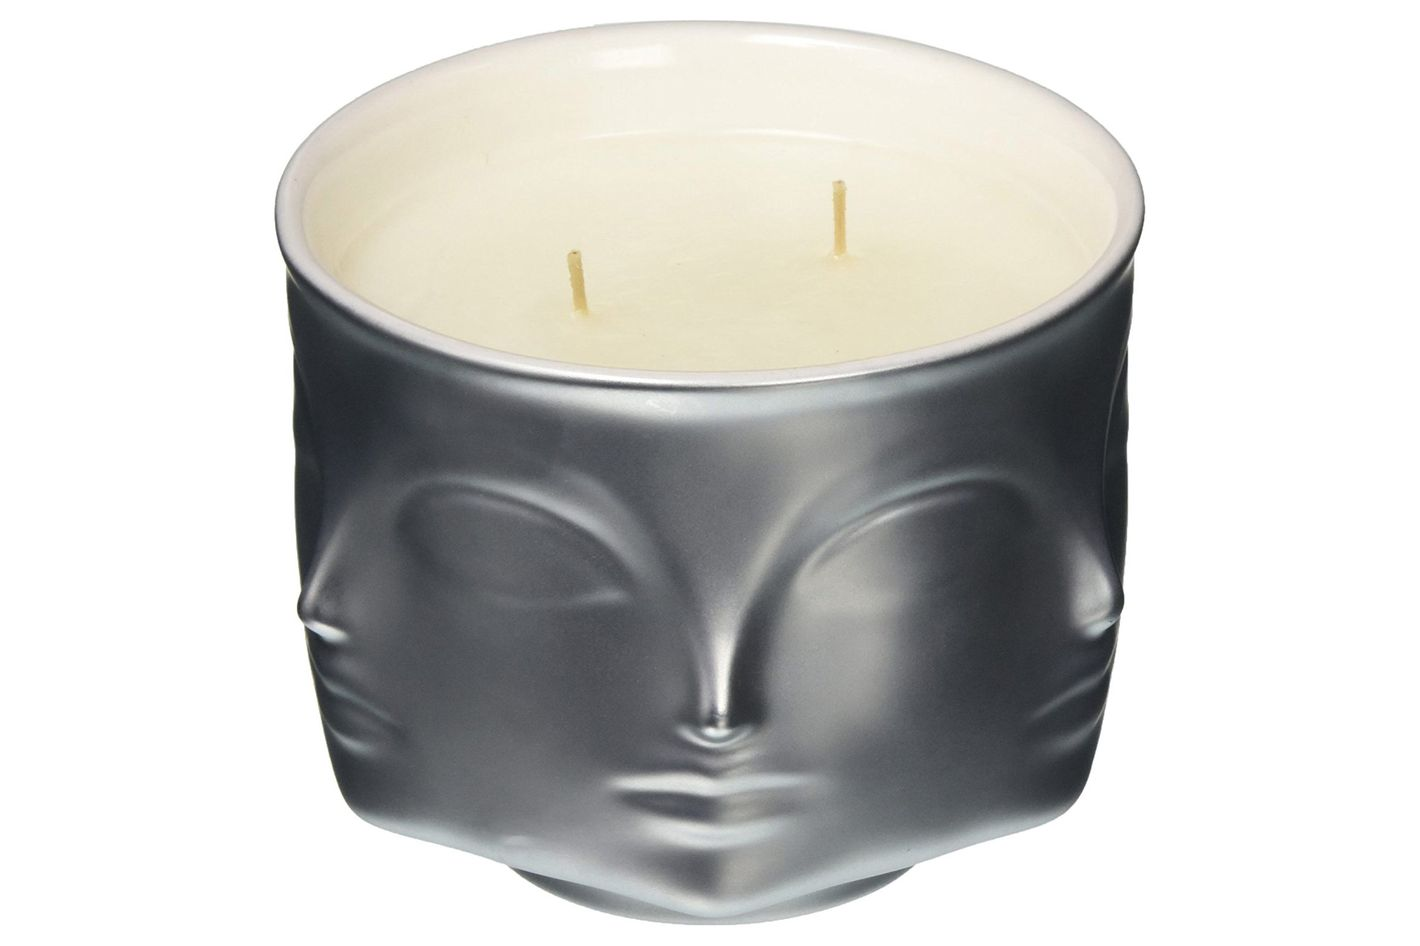 Jonathan Adler Muse D 'argent Candle